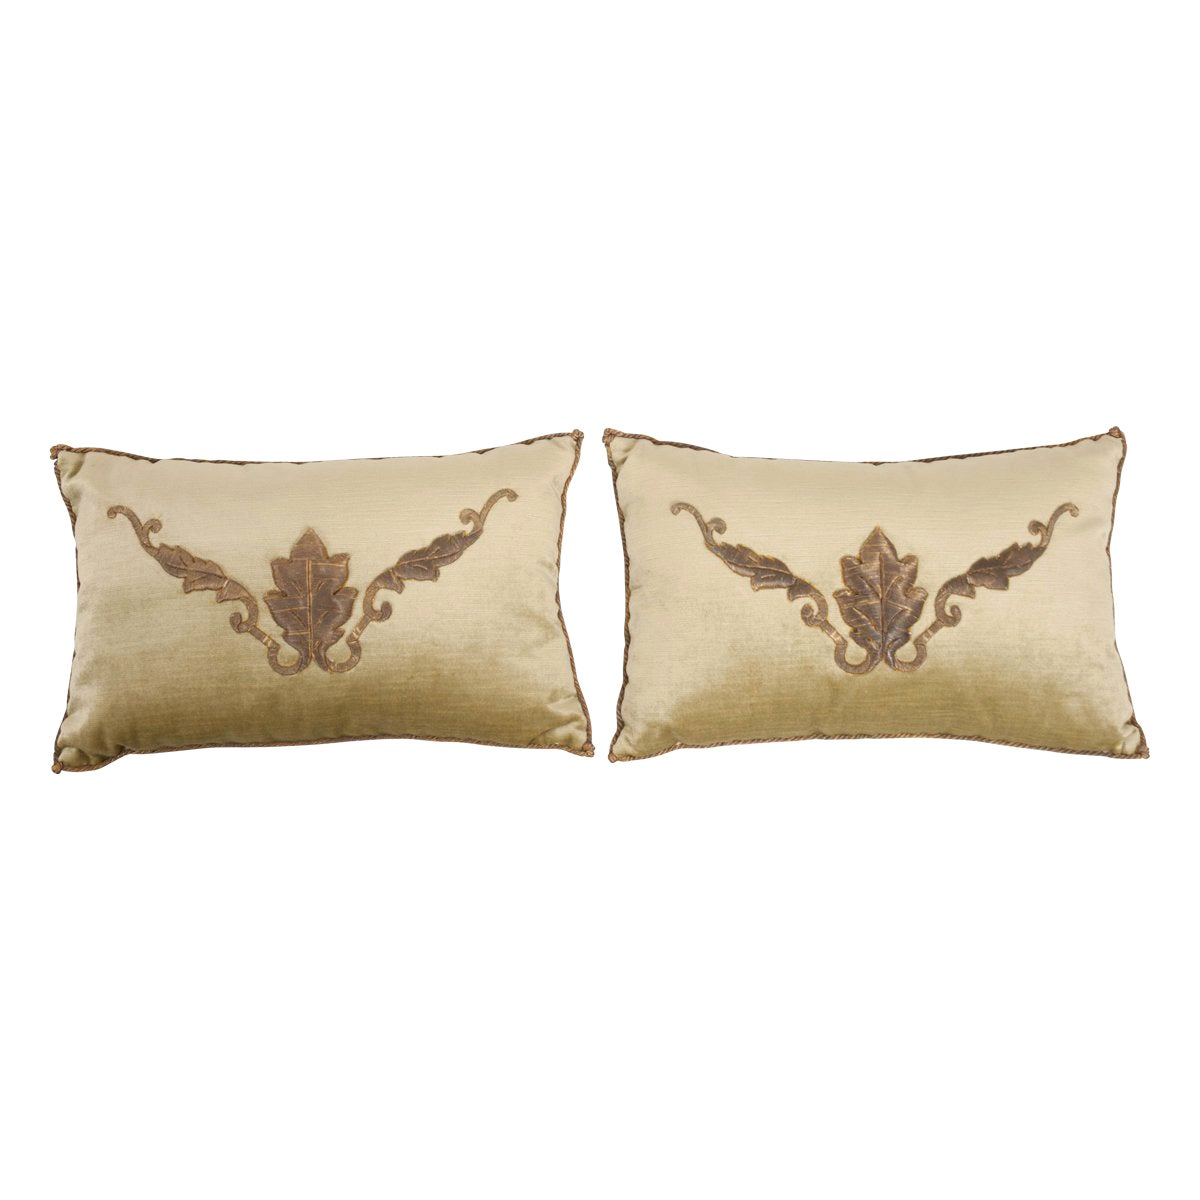 Pair of B. Viz Design Antique Textile Pillows